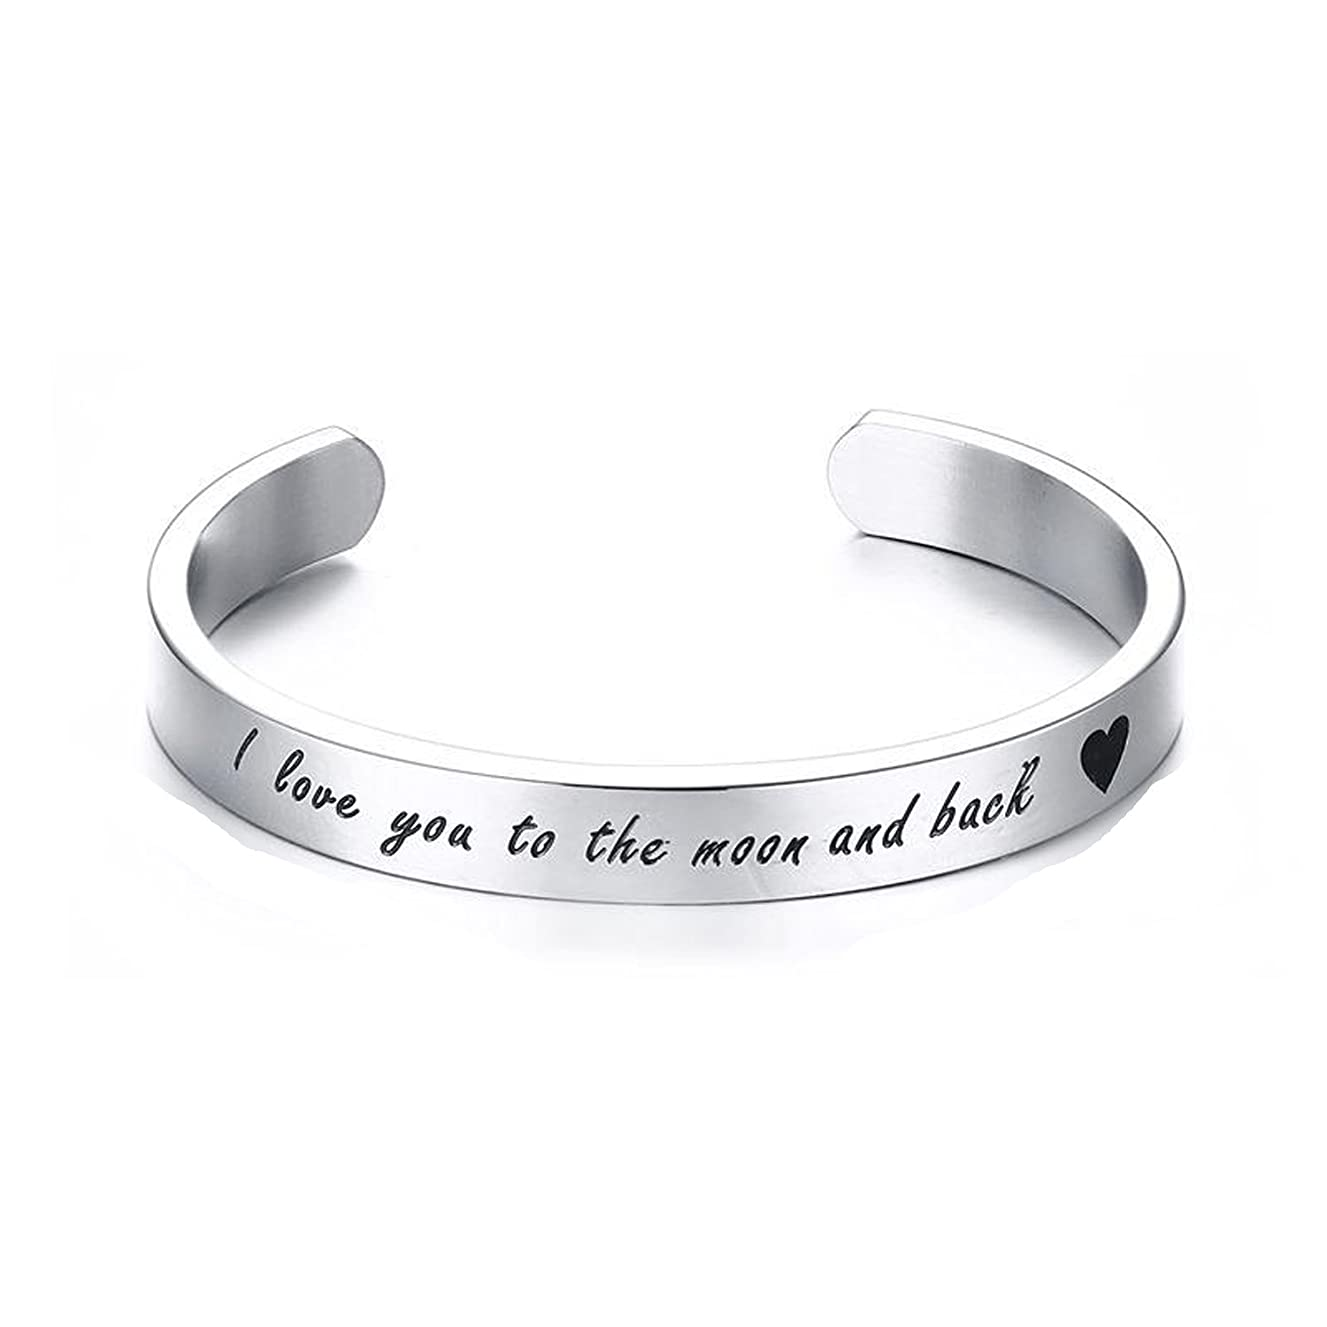 Nanafast 8mm Letters Messaged Cuff Bangle Bracelet, Stainless Steel Couple Bangle Jewelry Gift